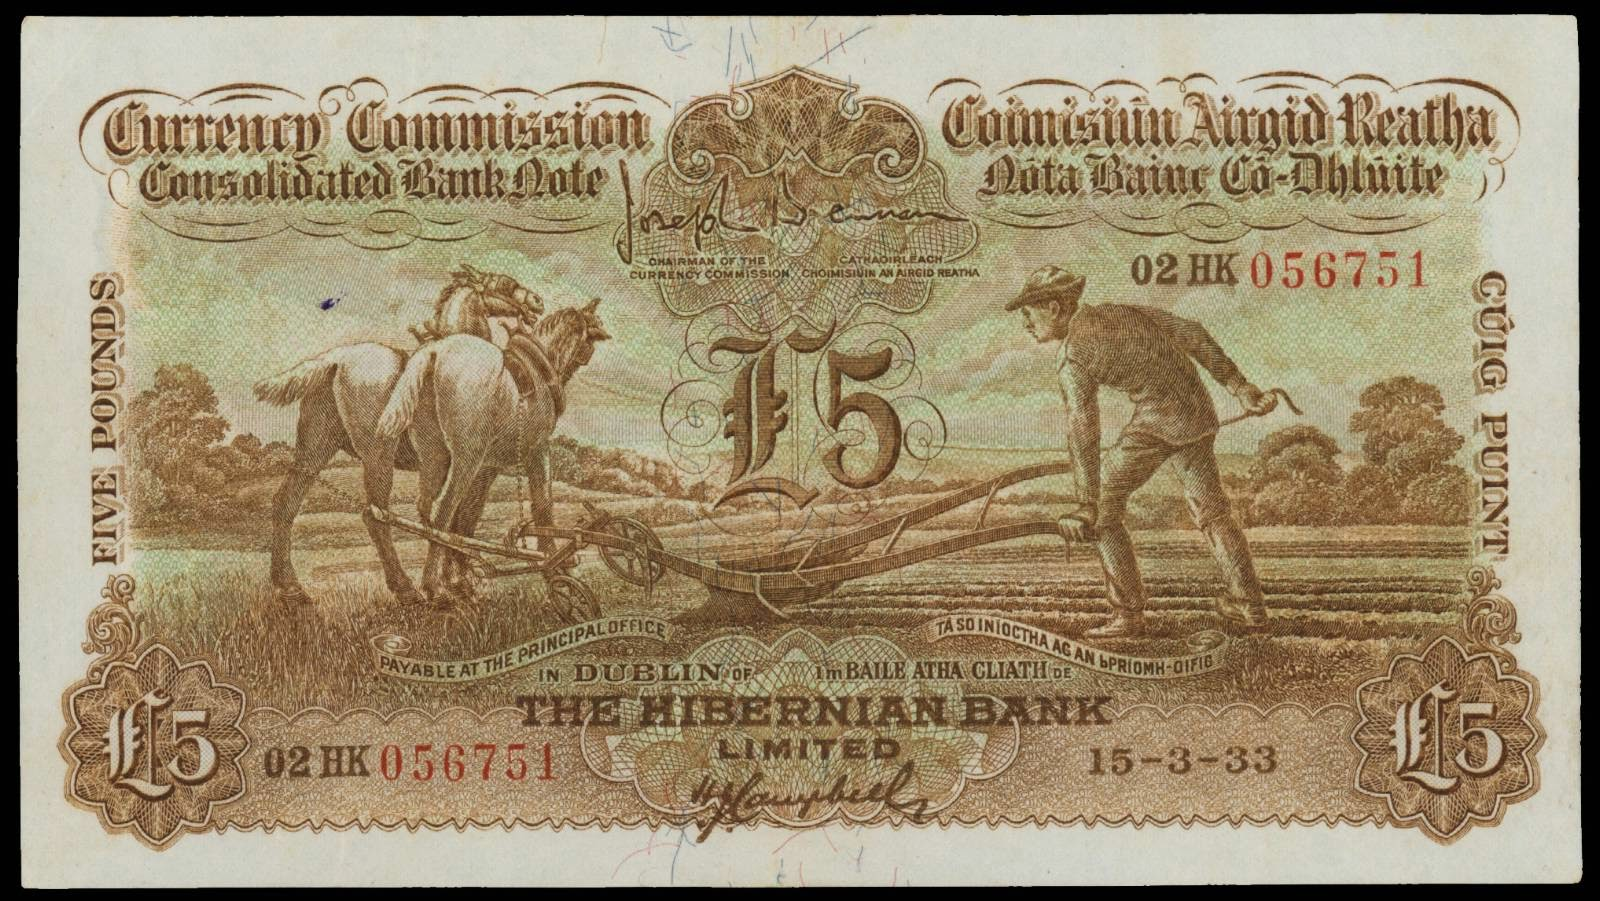 Ireland Currency Consolidated banknotes 5 Pounds Ploughman Note